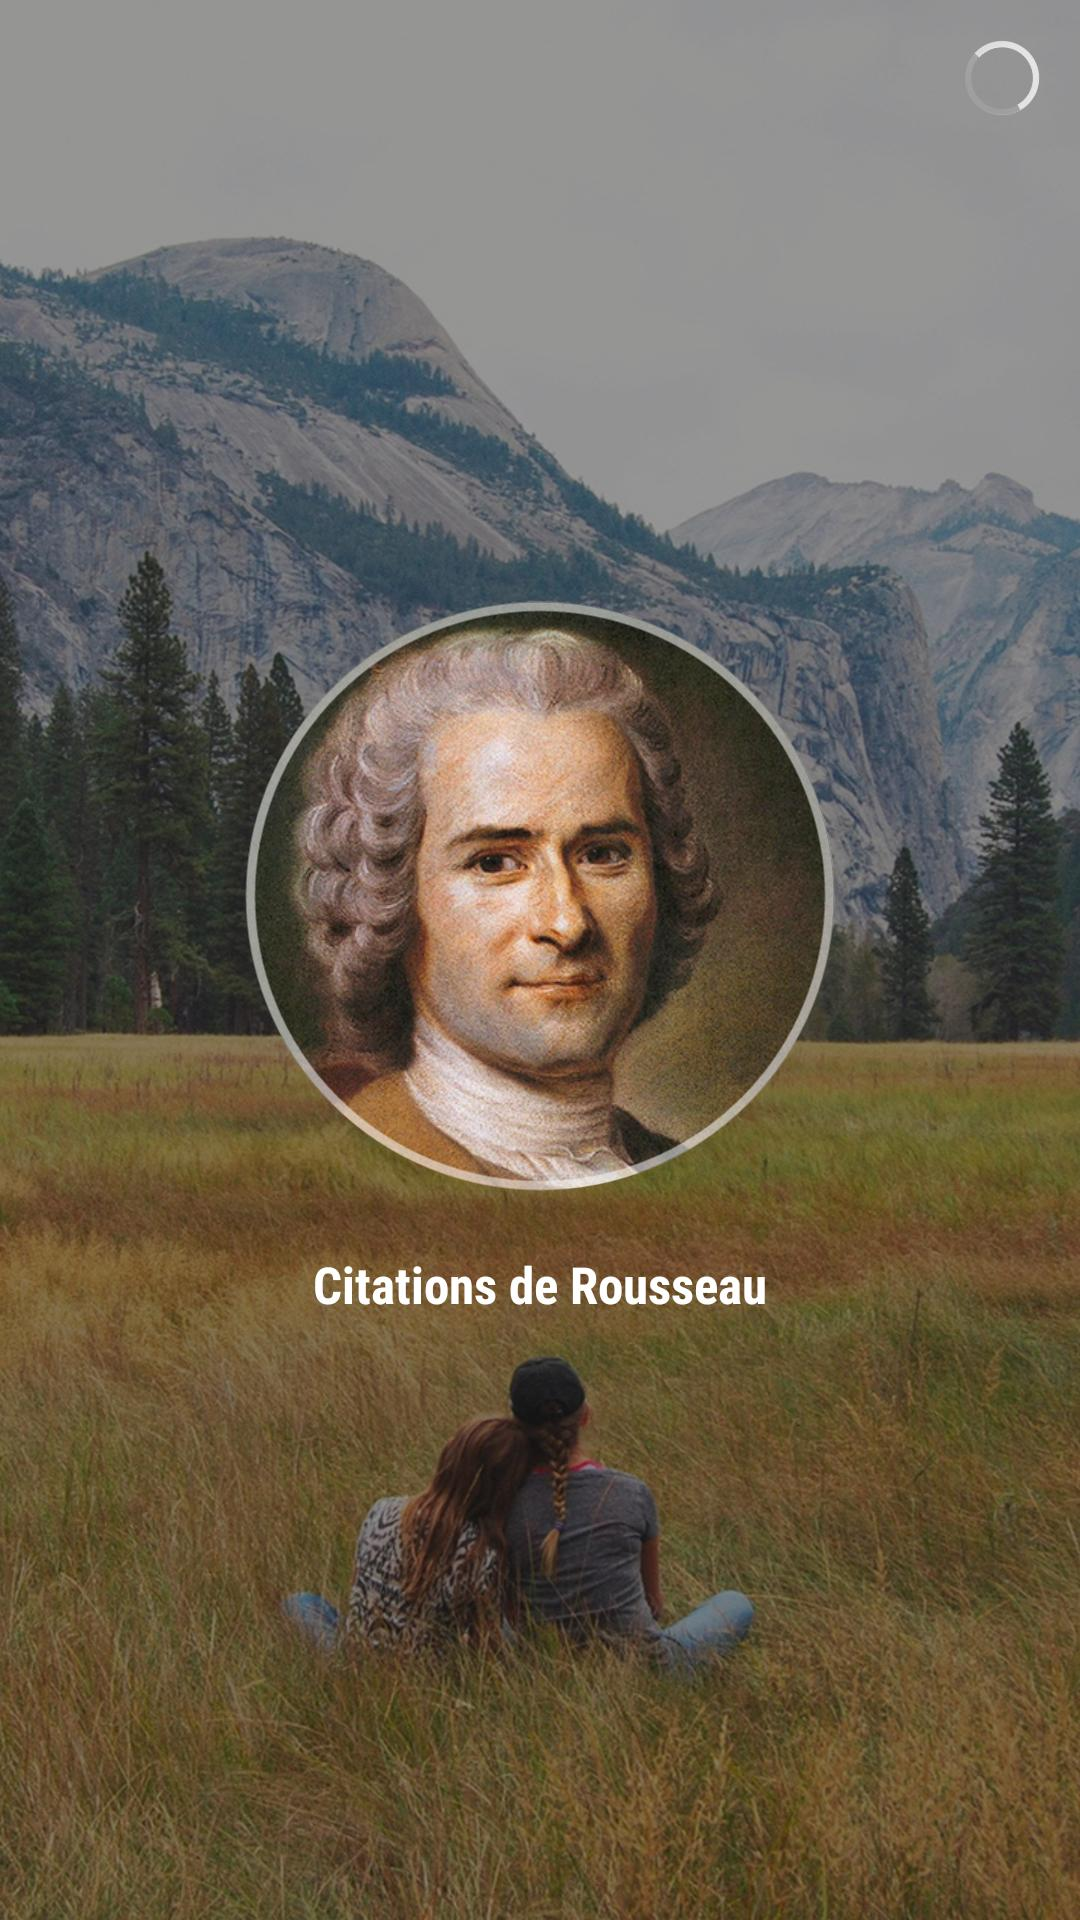 Citations De Rousseau For Android Apk Download